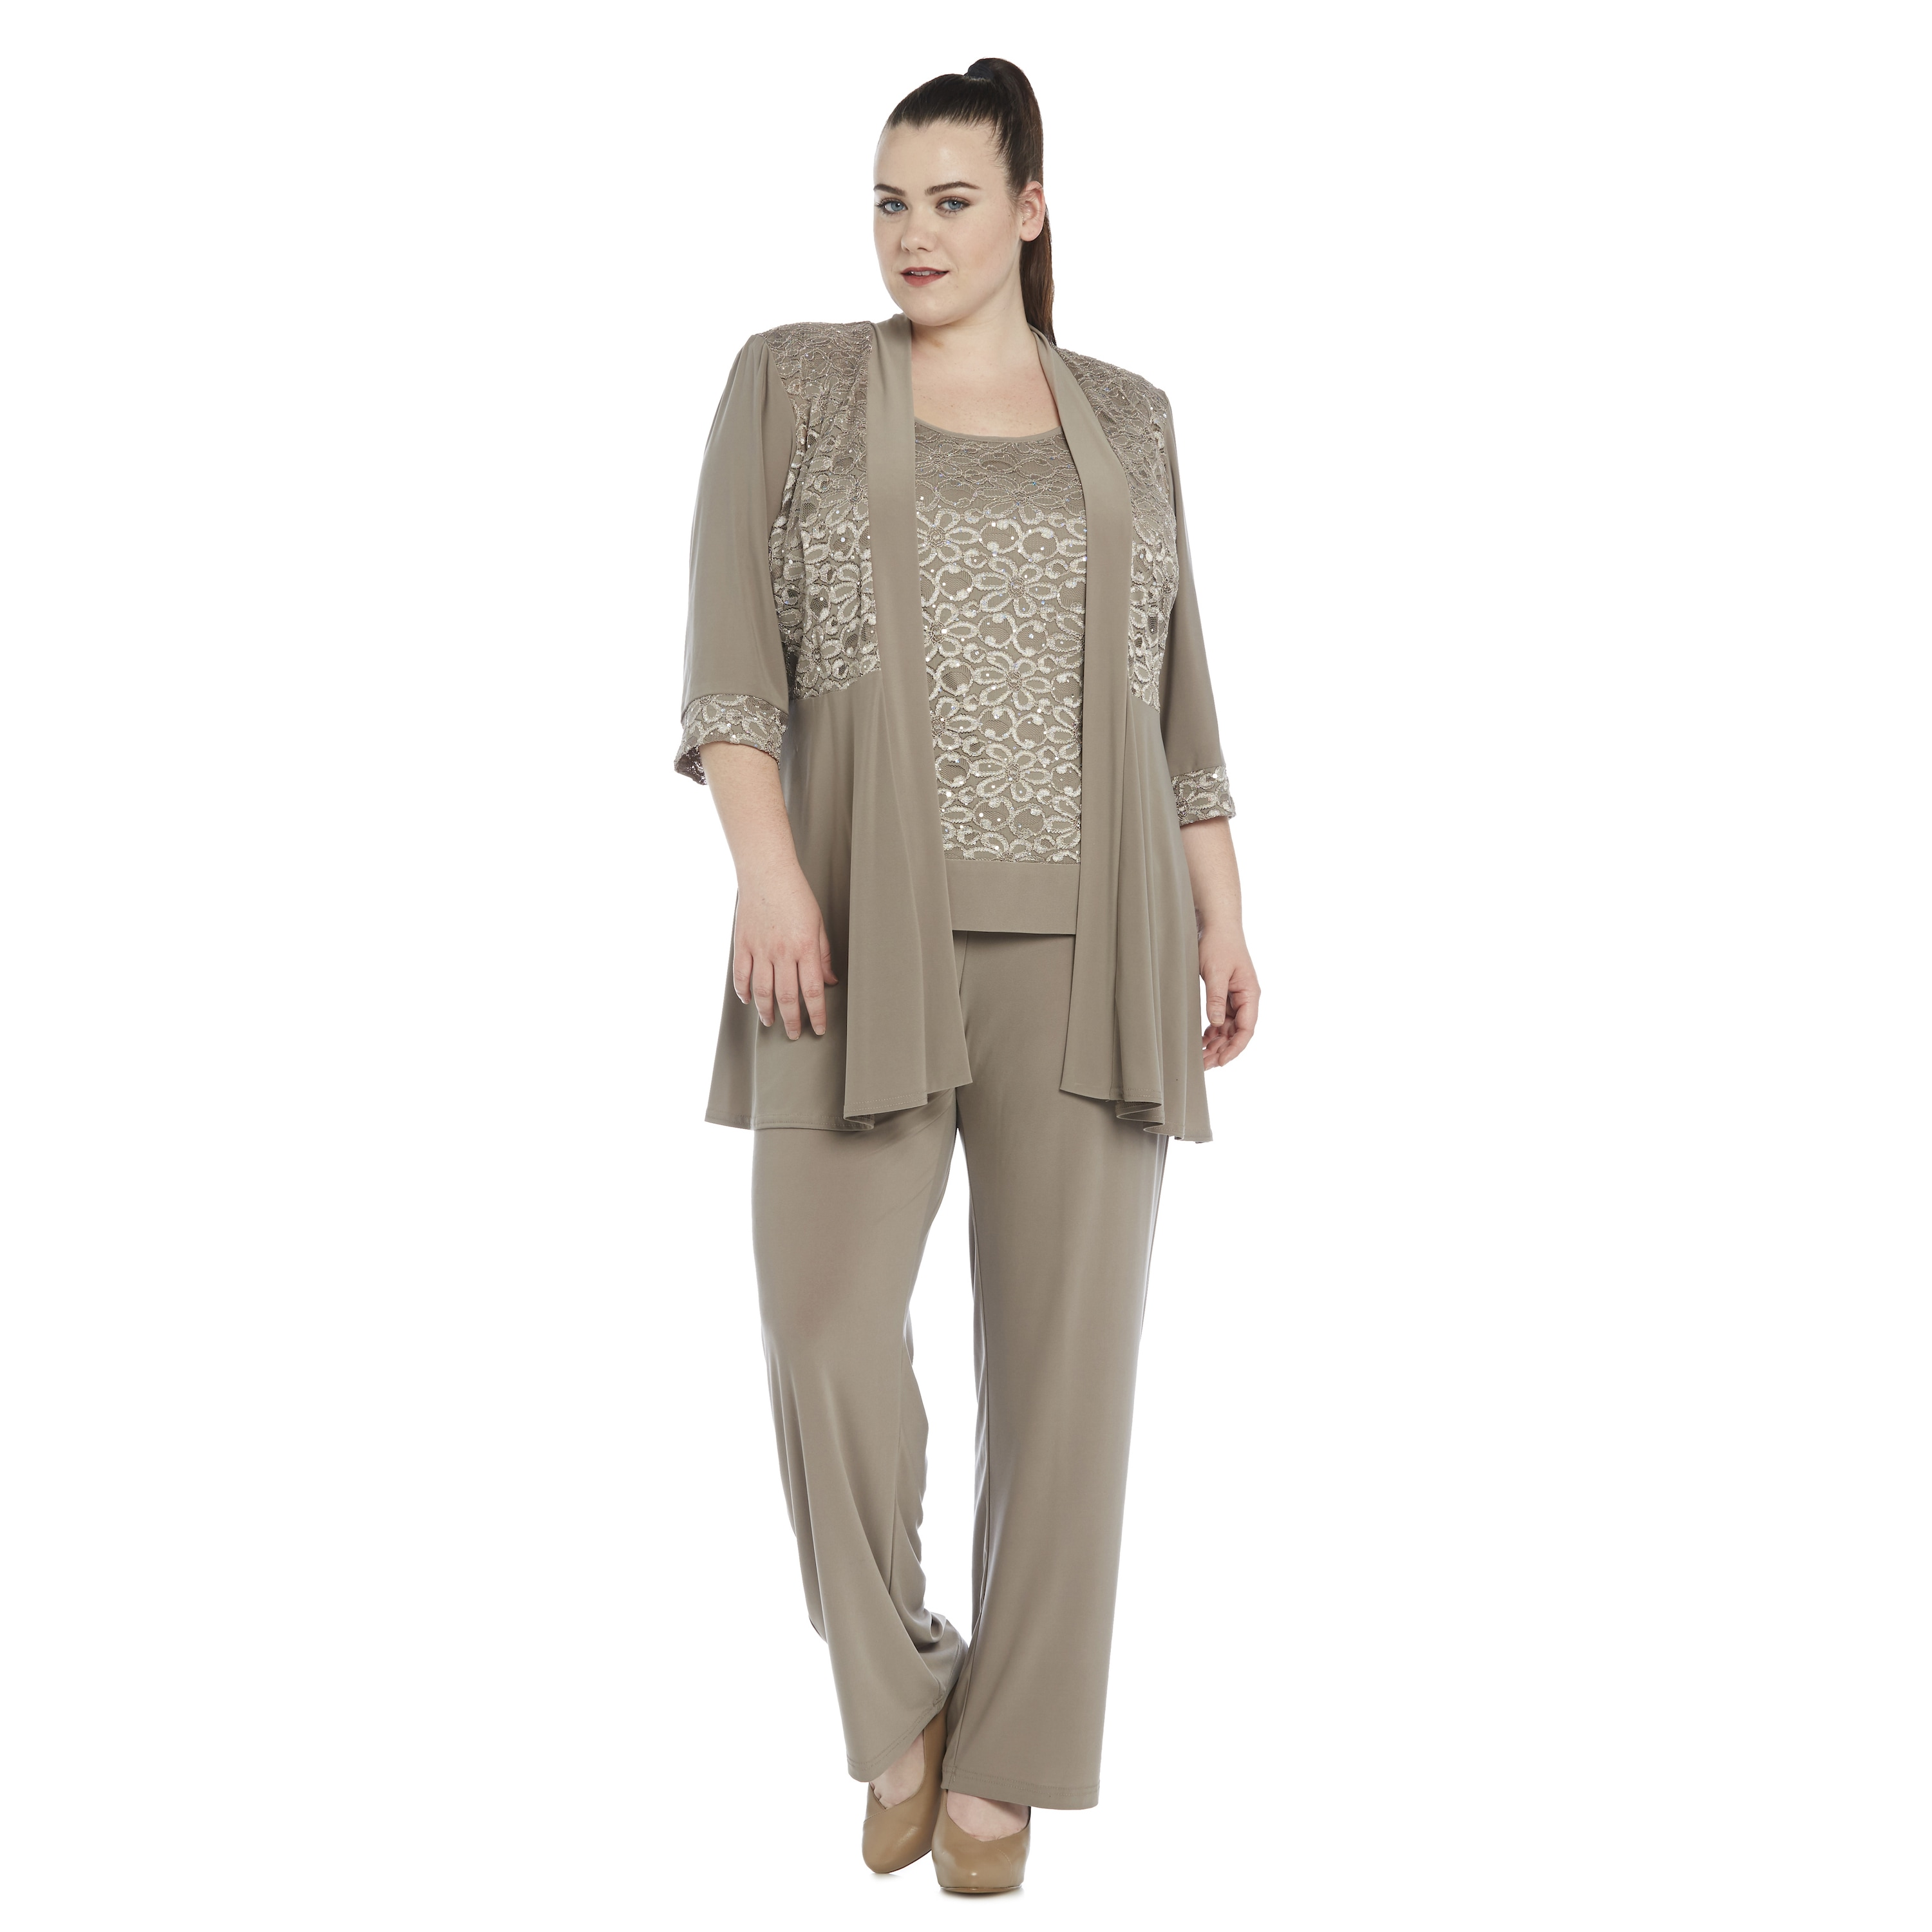 Asymmetrical Chiffon Pant Suits